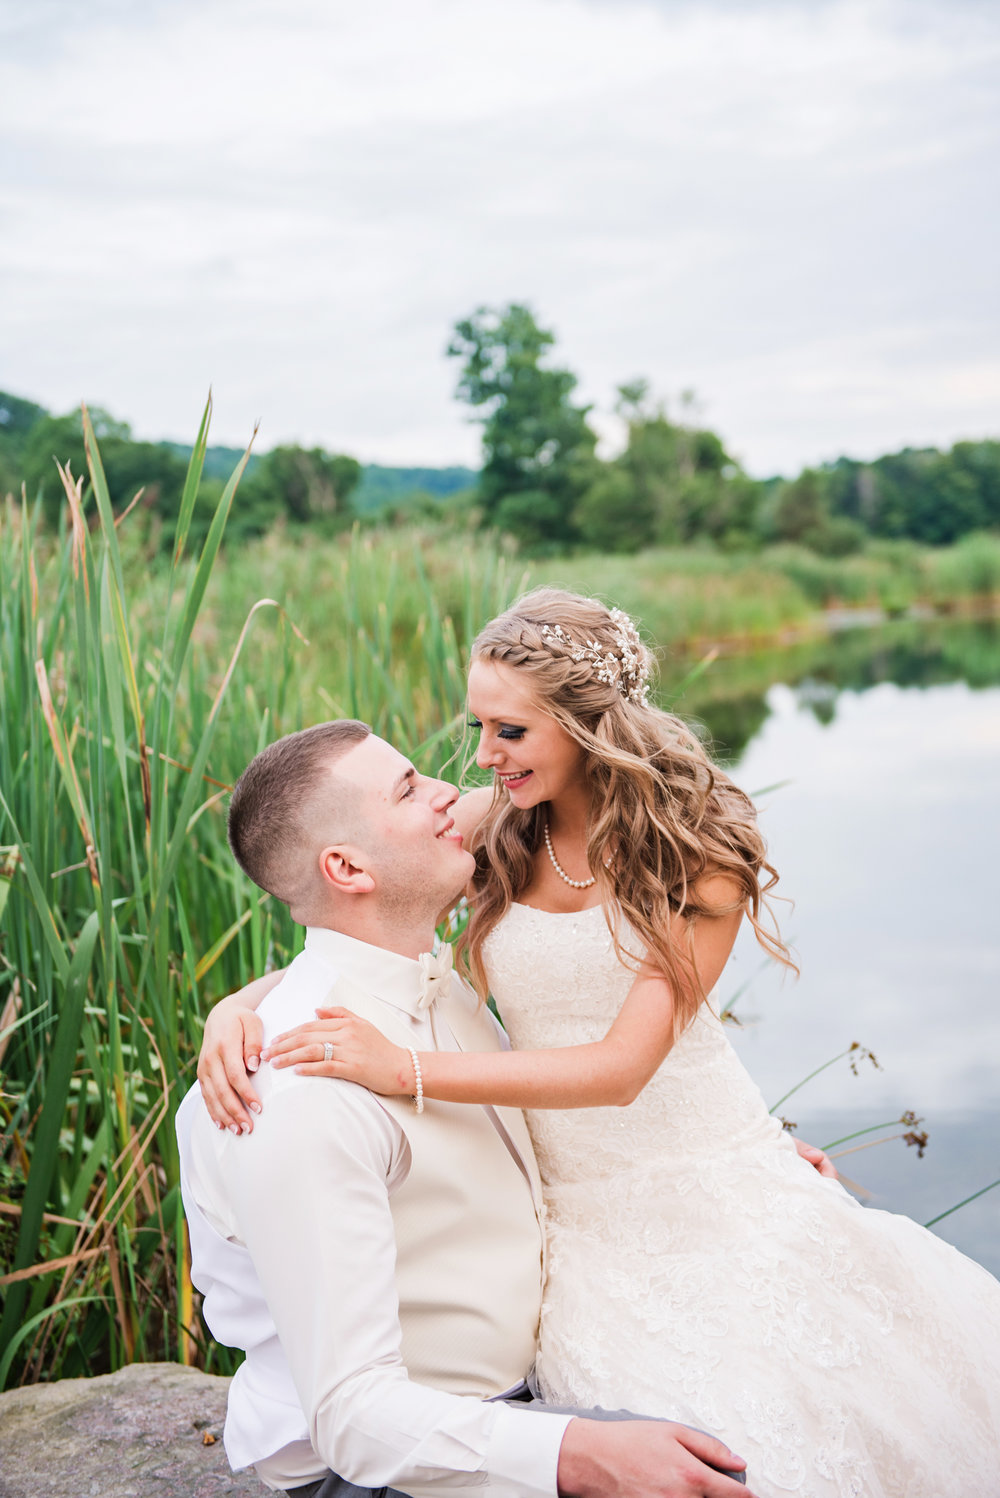 Wolf_Oak_Acres_Central_NY_Wedding_JILL_STUDIO_Rochester_NY_Photographer_DSC_8998.jpg